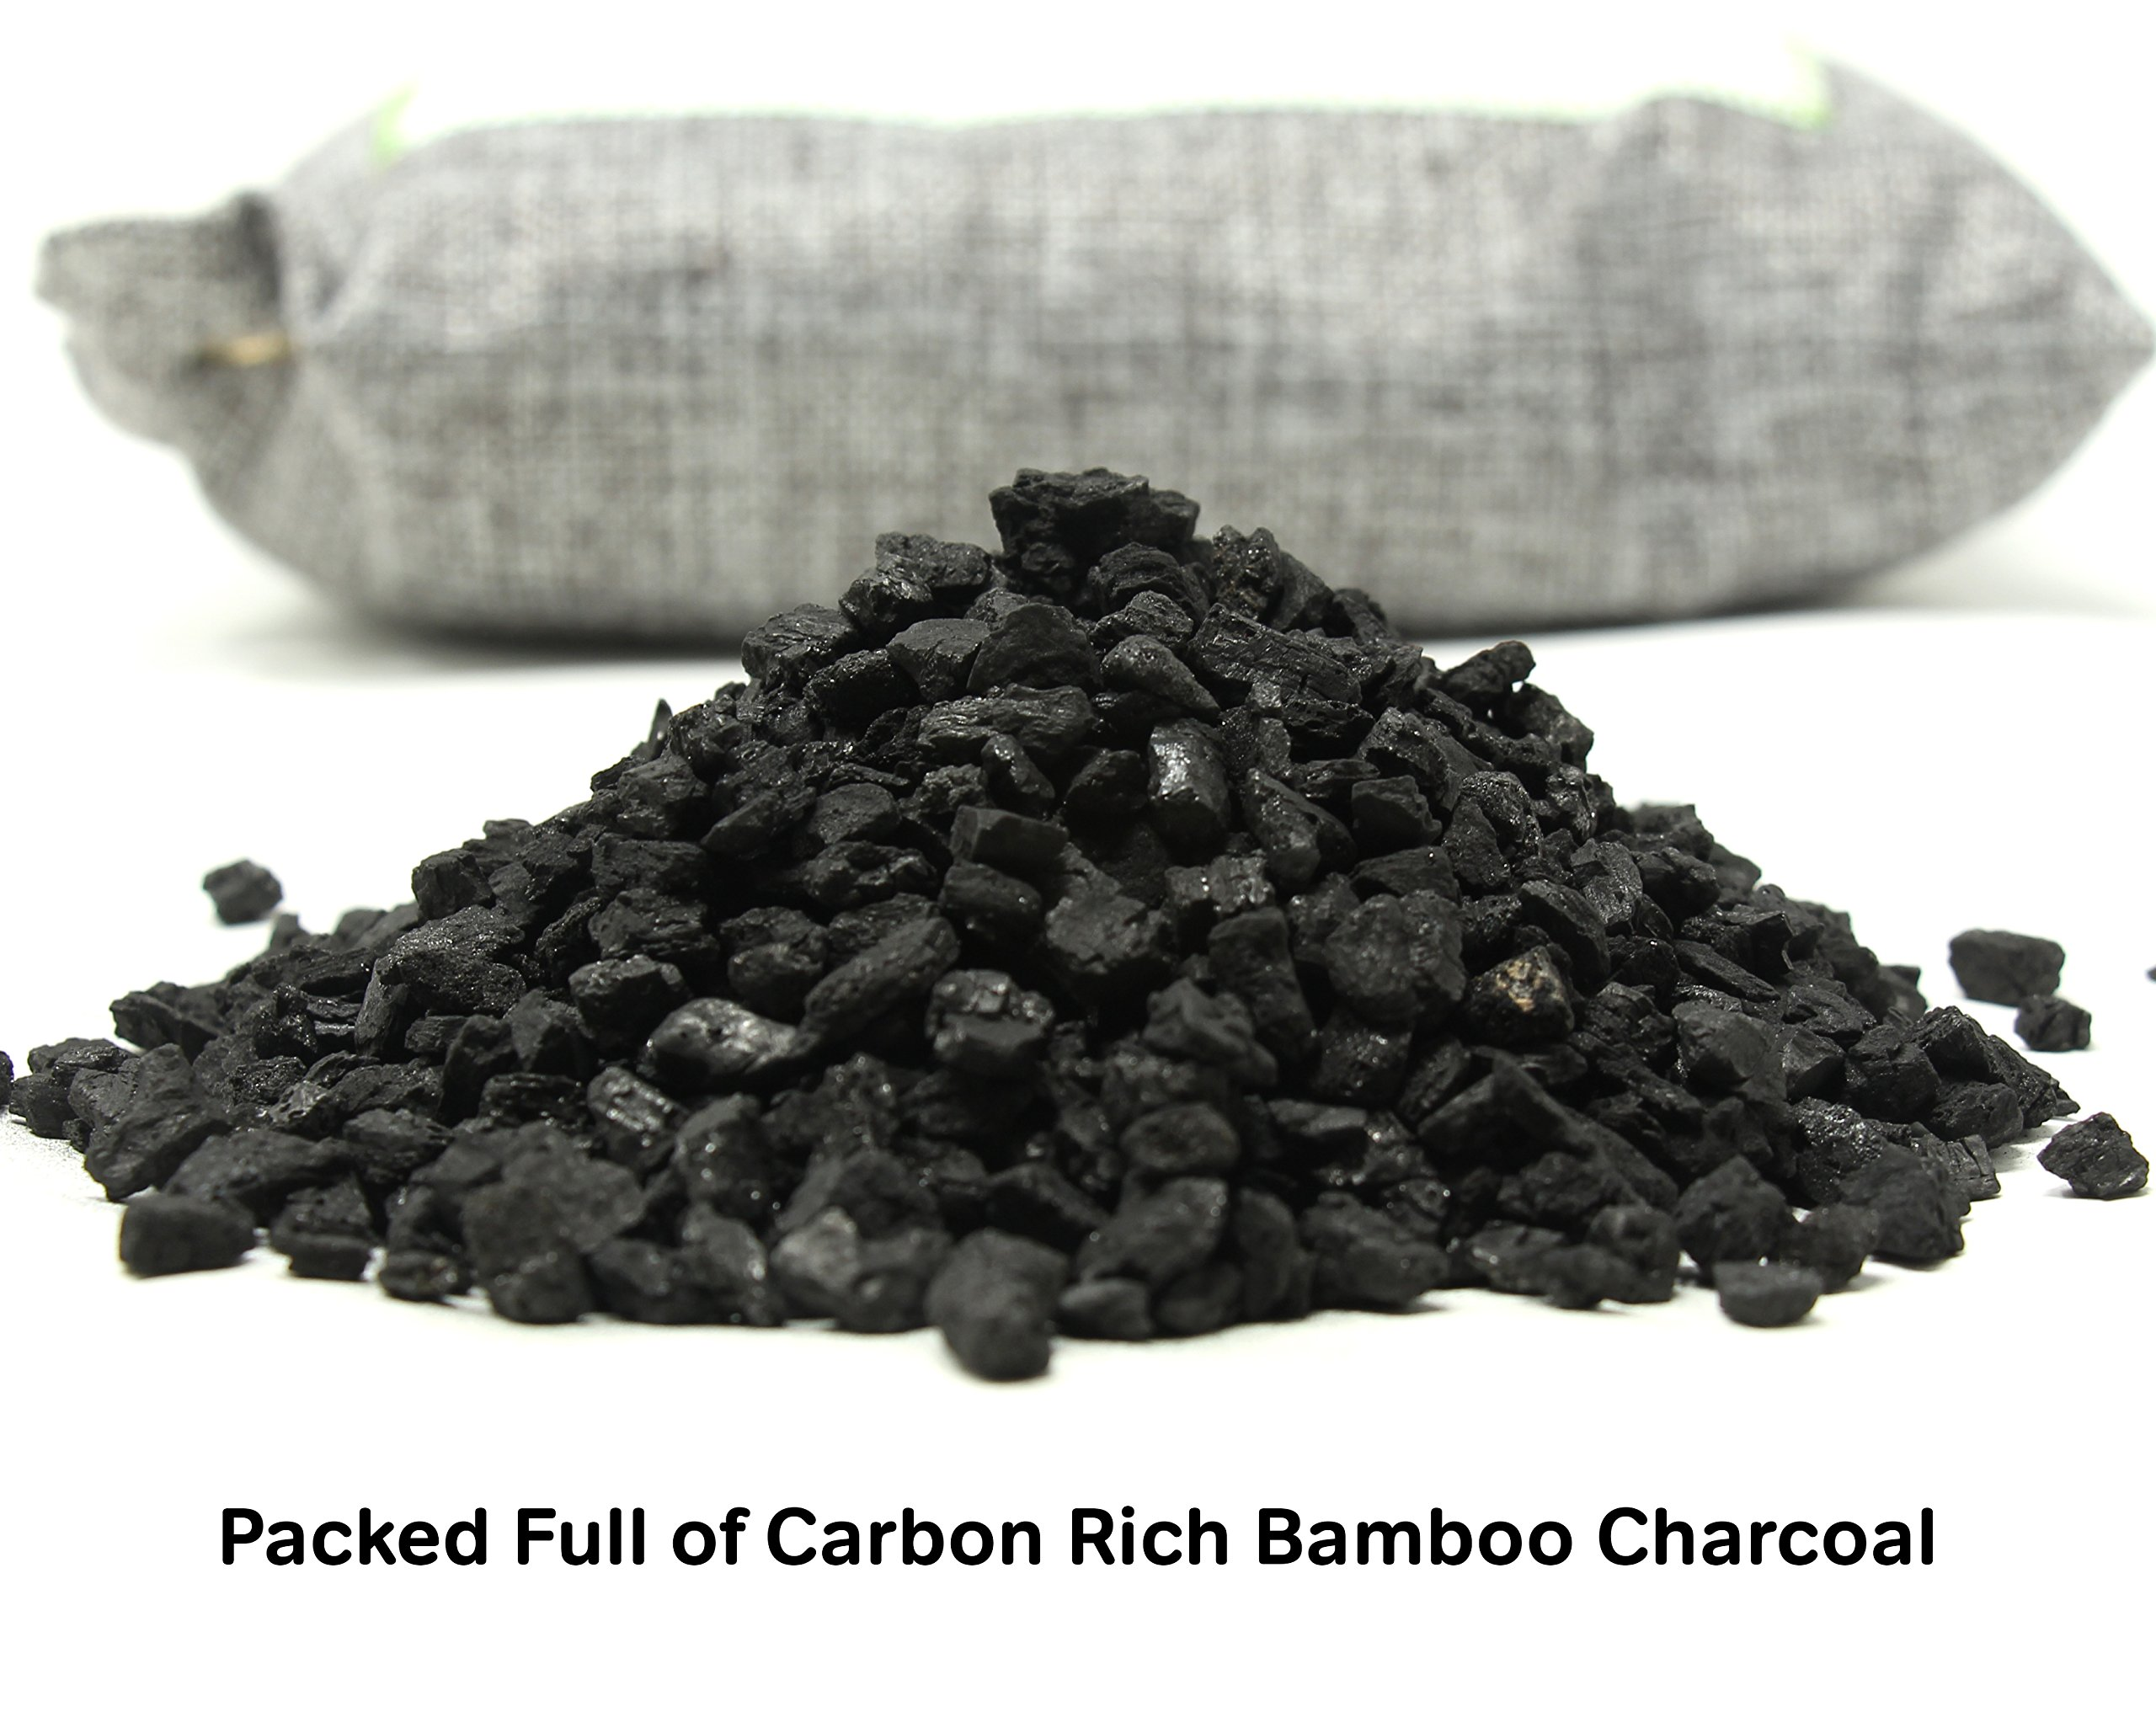 1000g Large Bamboo Charcoal Air Purifier Bag - Deodorizer and Air Freshener - Remove Odor and Control Moisture in Your RV, Camper, SUV, Car, Semi truck, Closet, Mobile Home, Storage - Non fragrant by bmbu (Image #3)